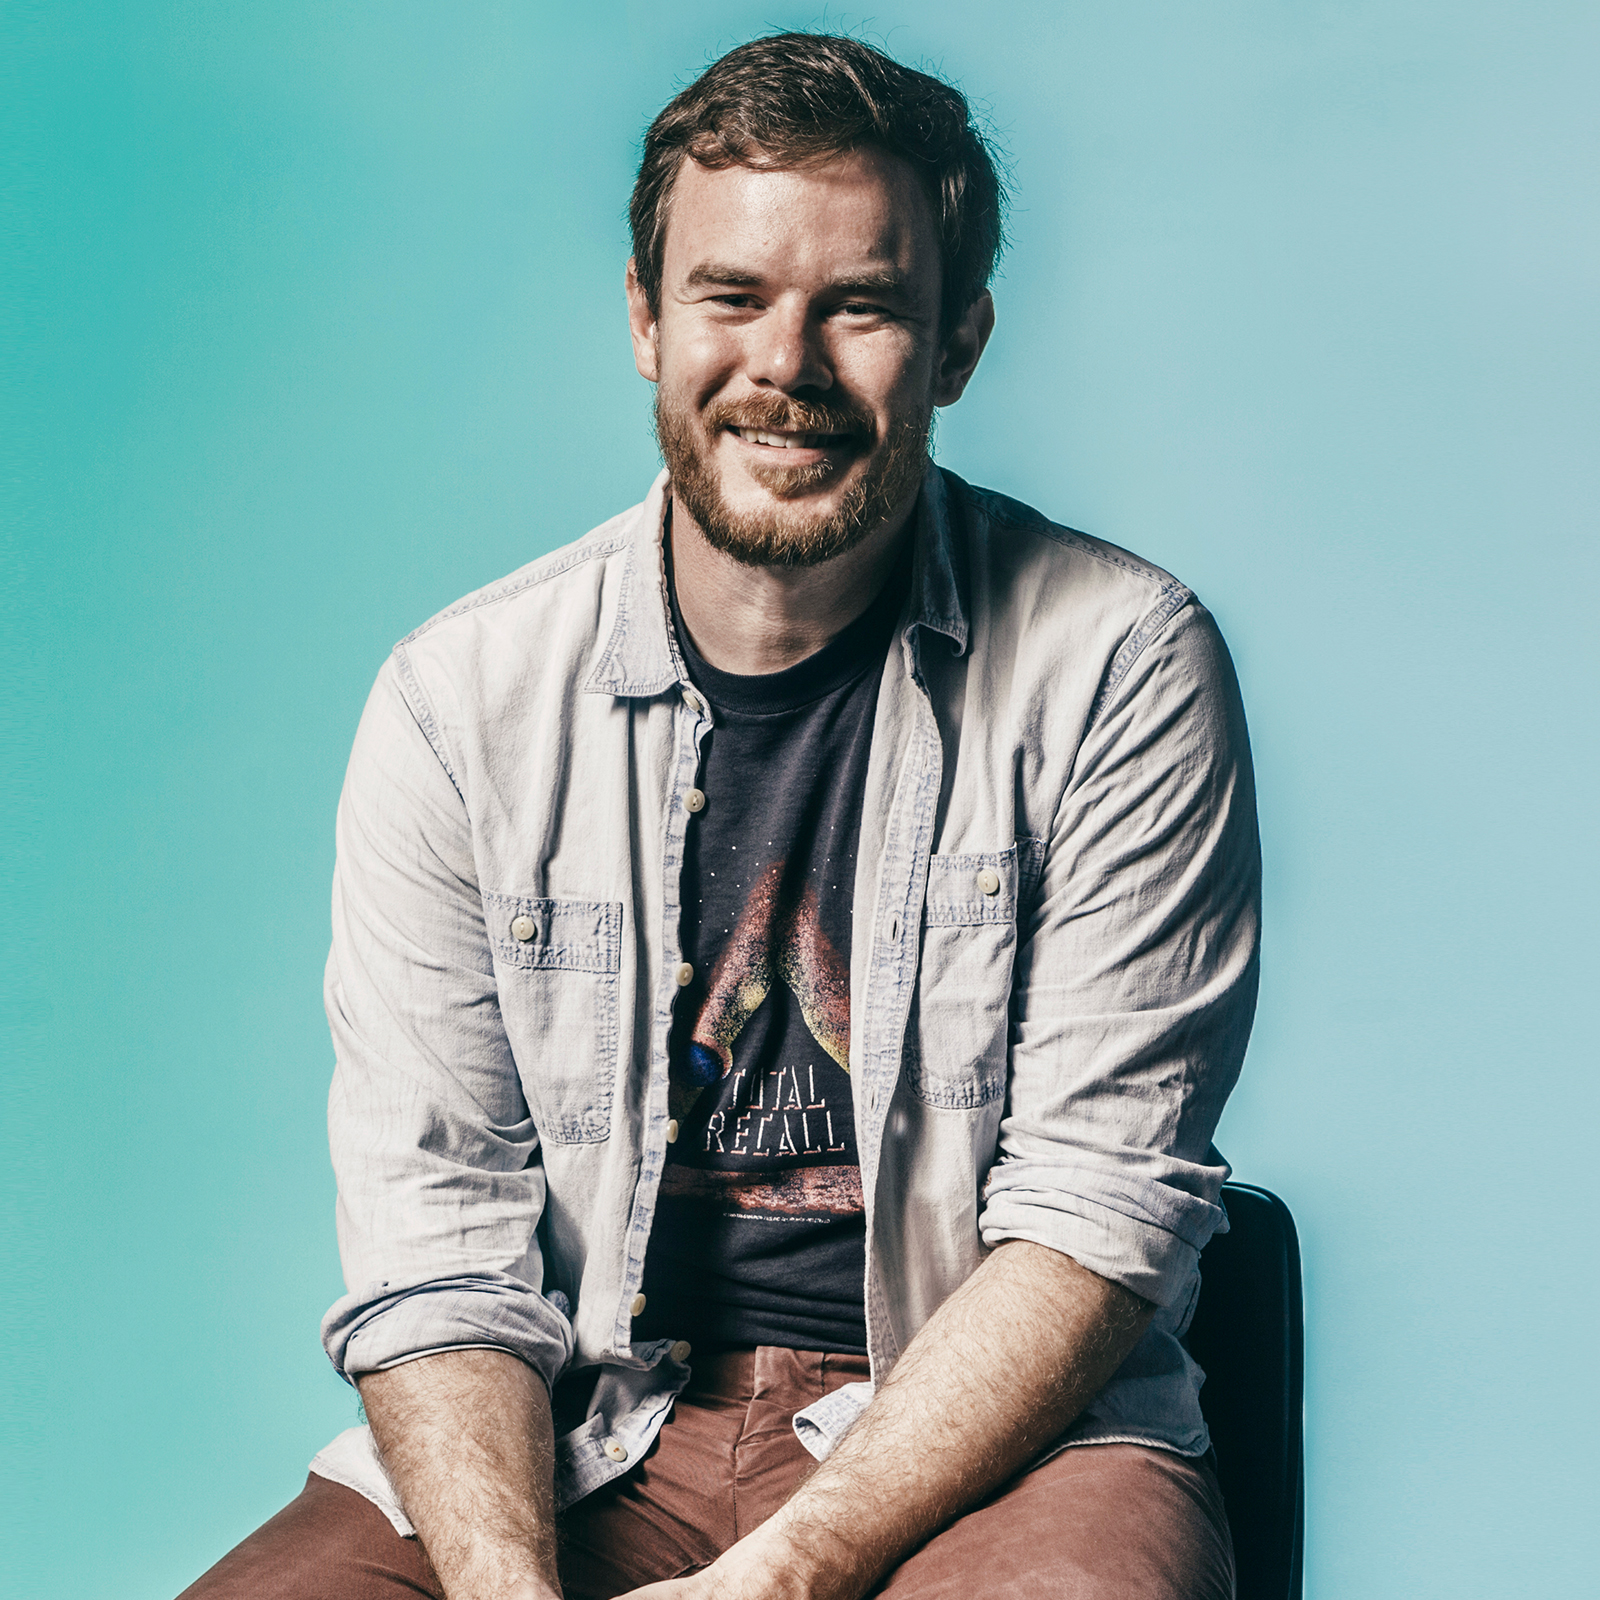 Joe Swanberg's Top 10